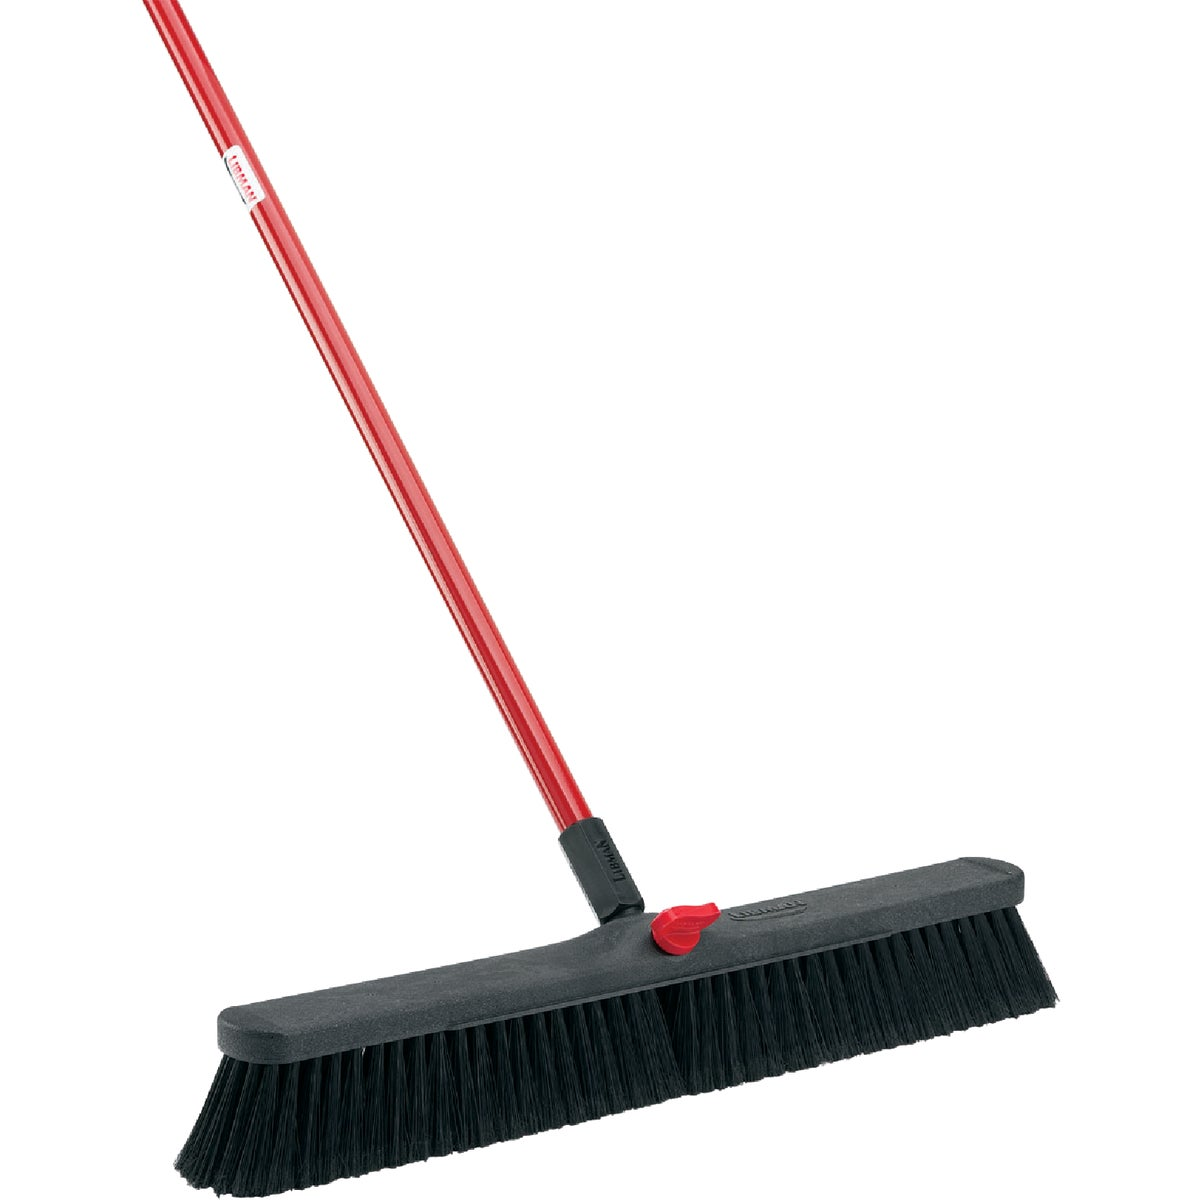 "24"" SMOOTH PUSH BROOM - 124961 by F H P-lp"